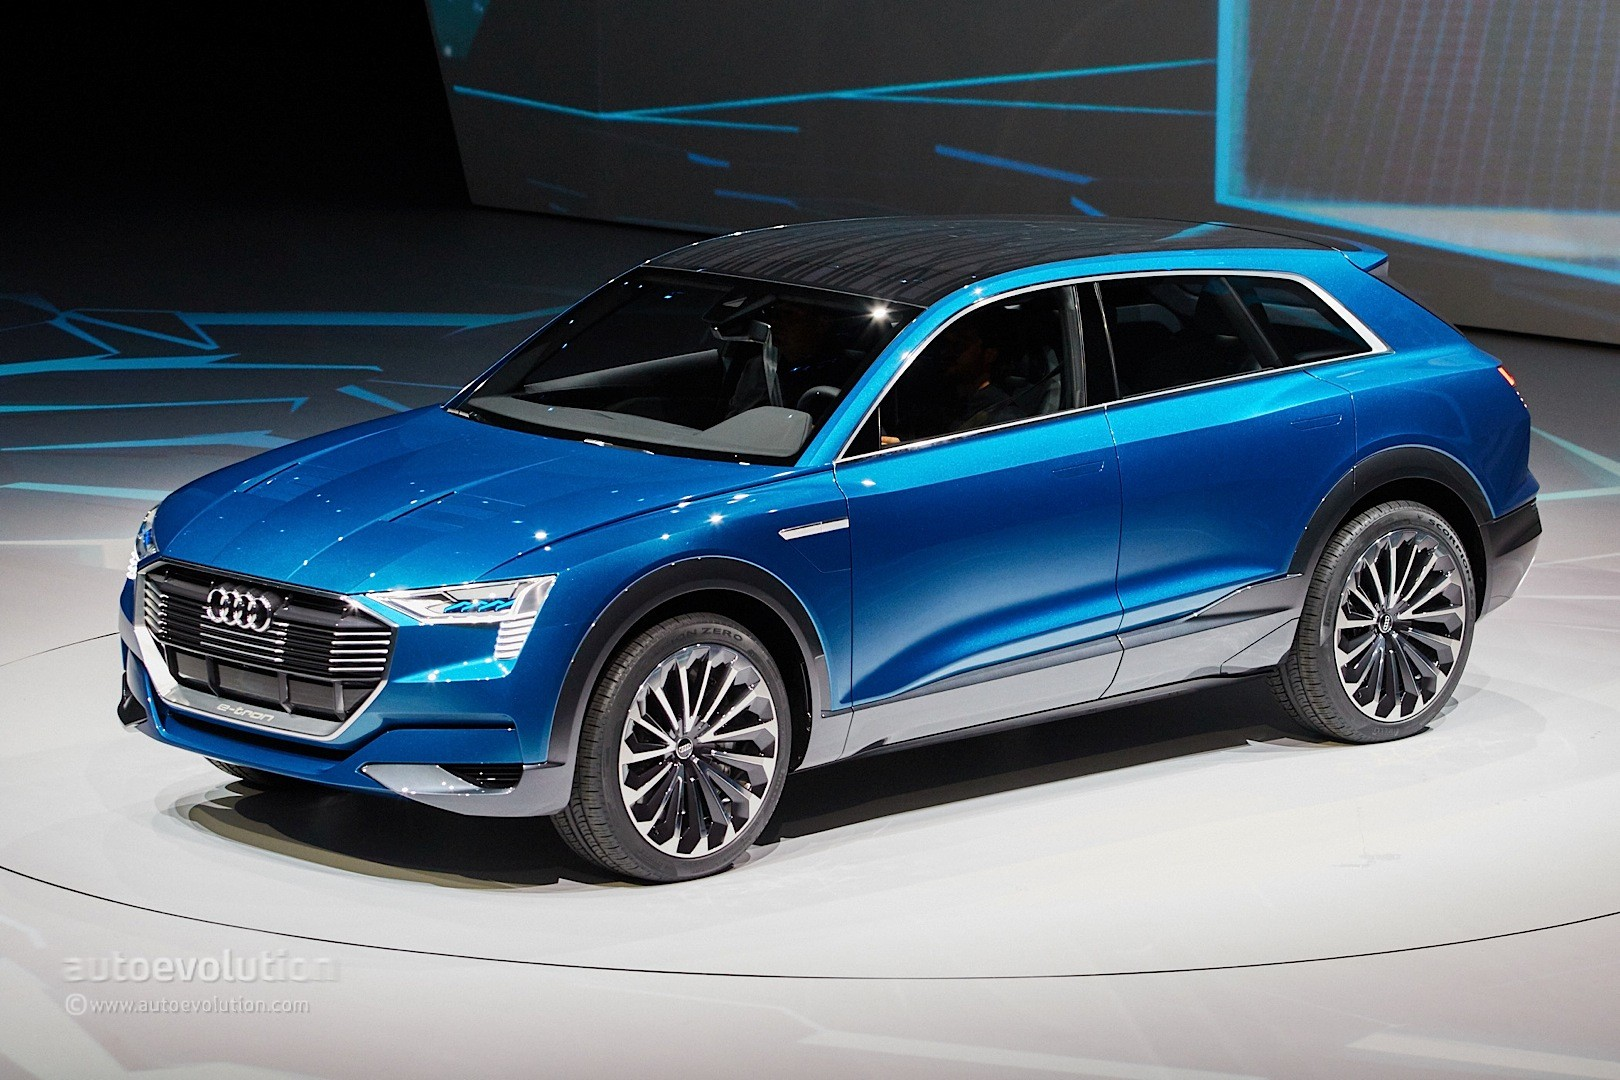 Audi Suv Models >> Audi Sport Electric Vehicle Coming In 2020 - autoevolution